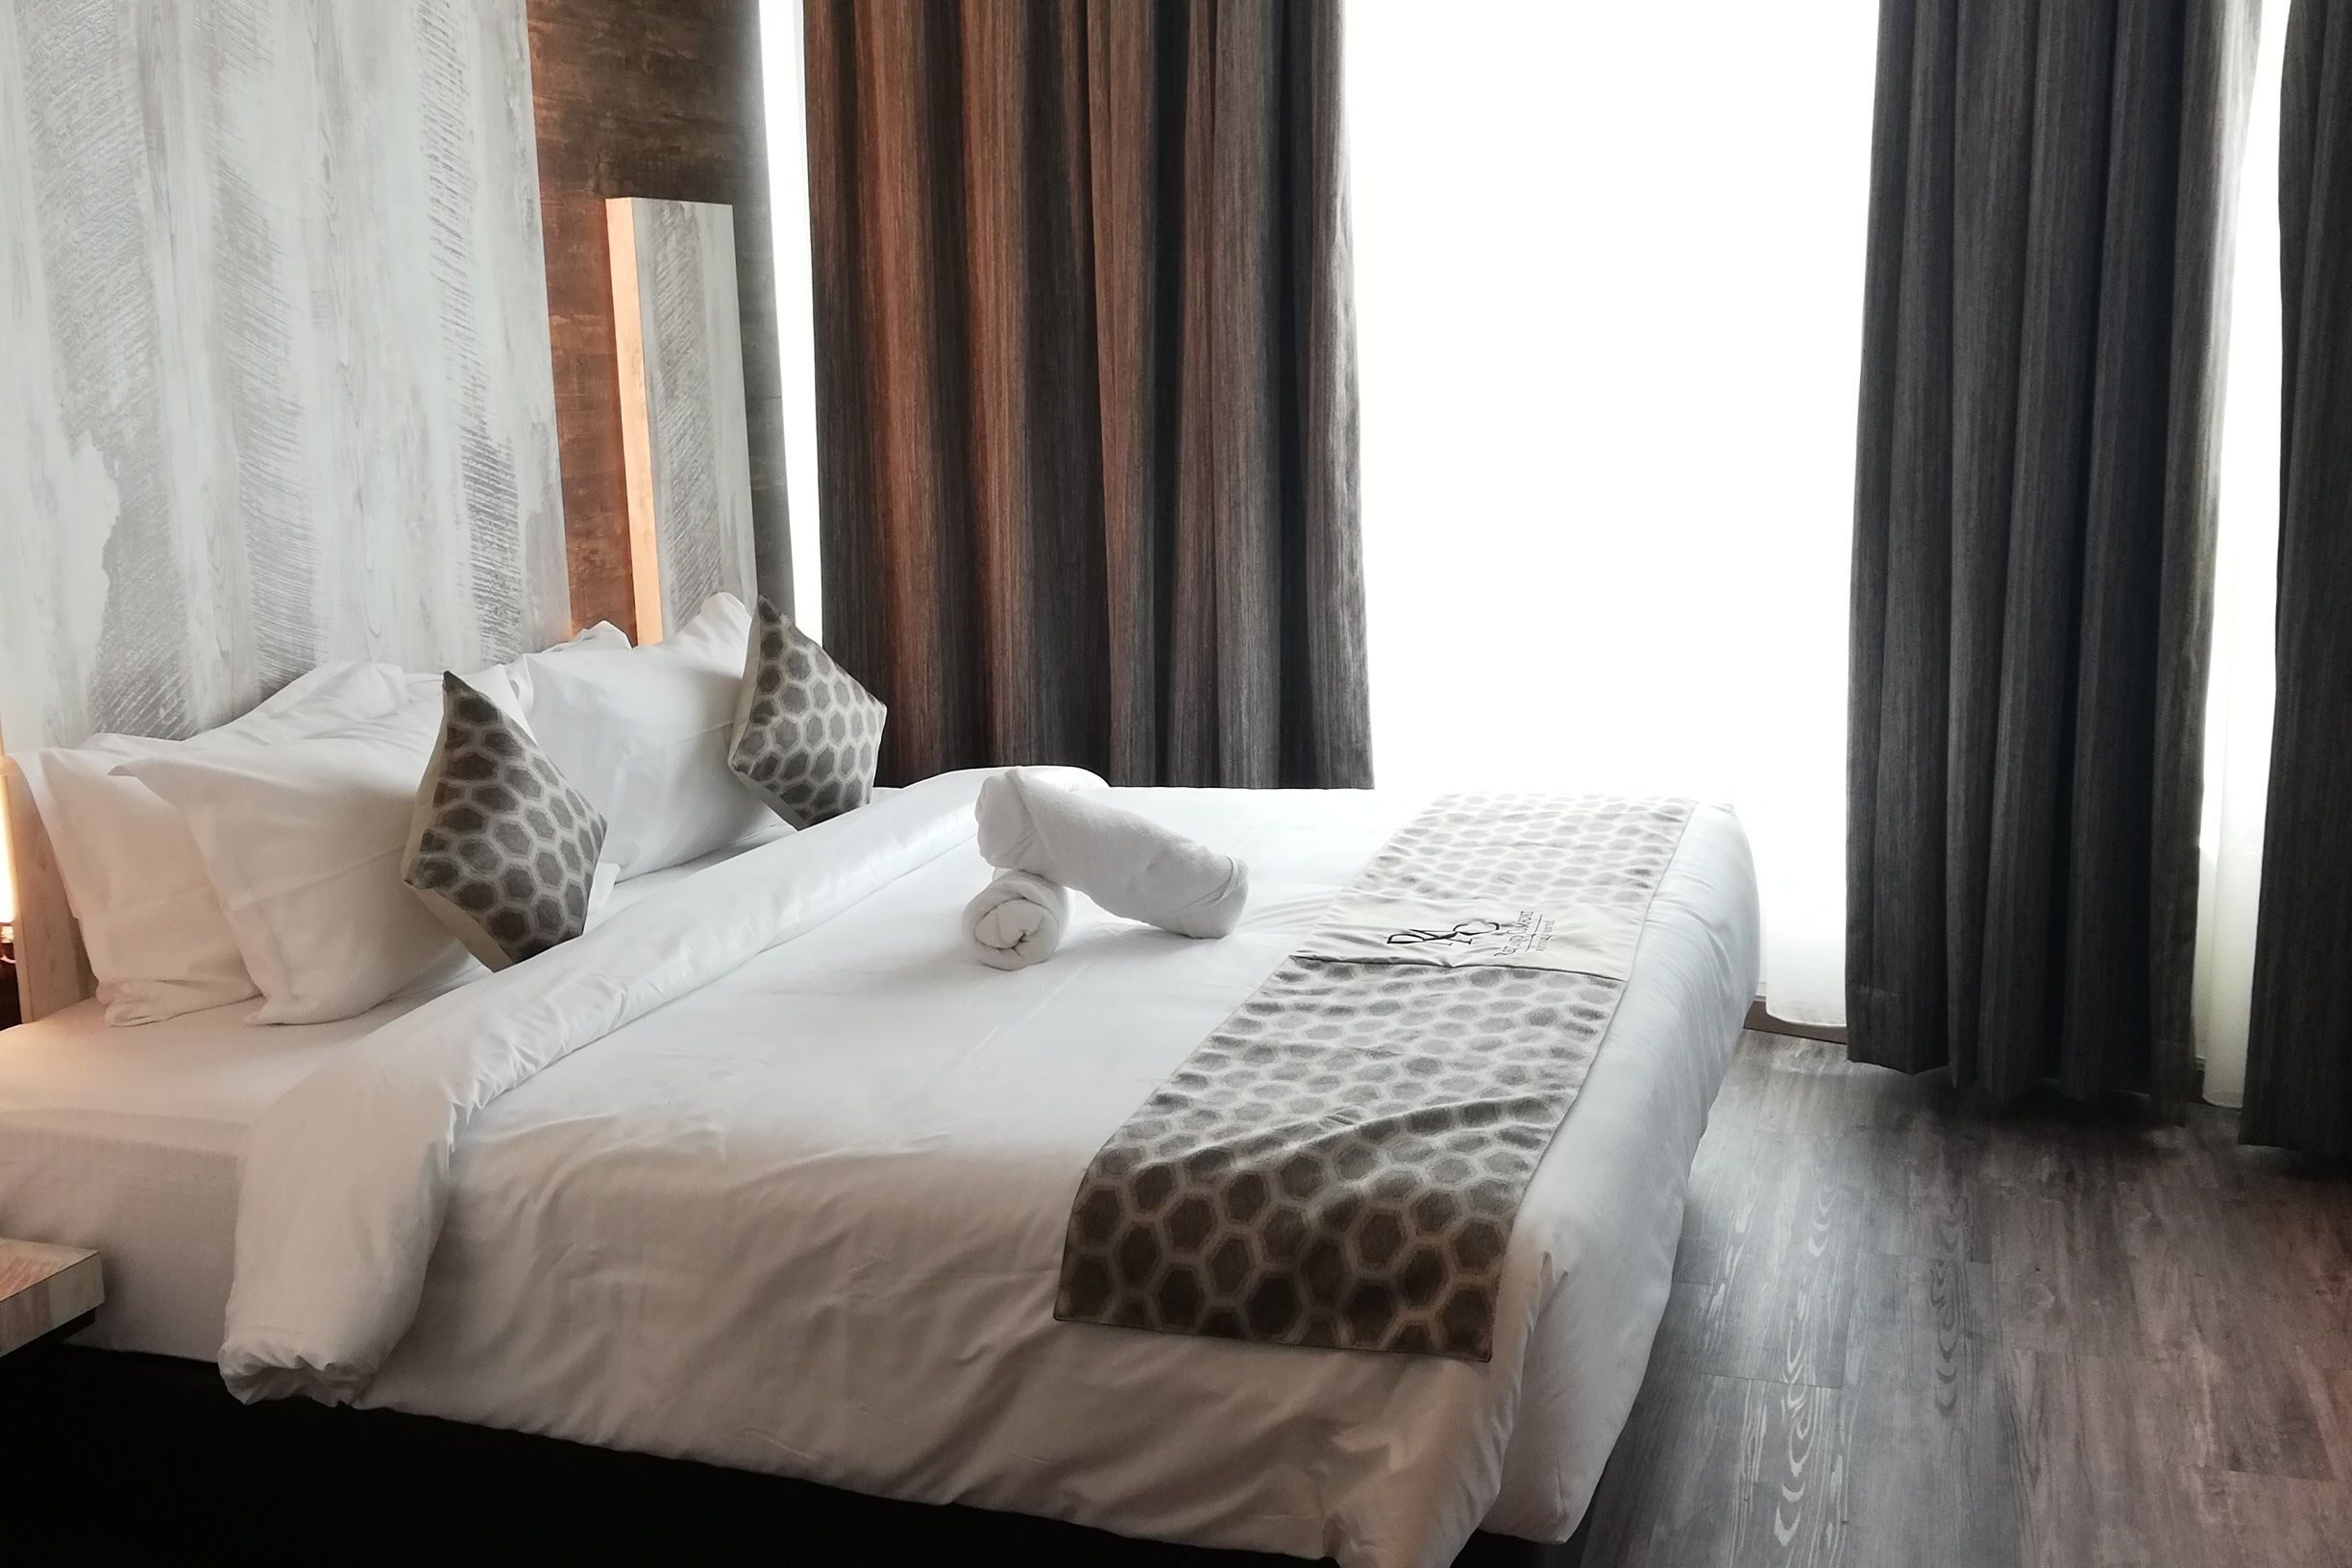 Courtesy of Rest and Comfort Boutique Hotel / Expedia